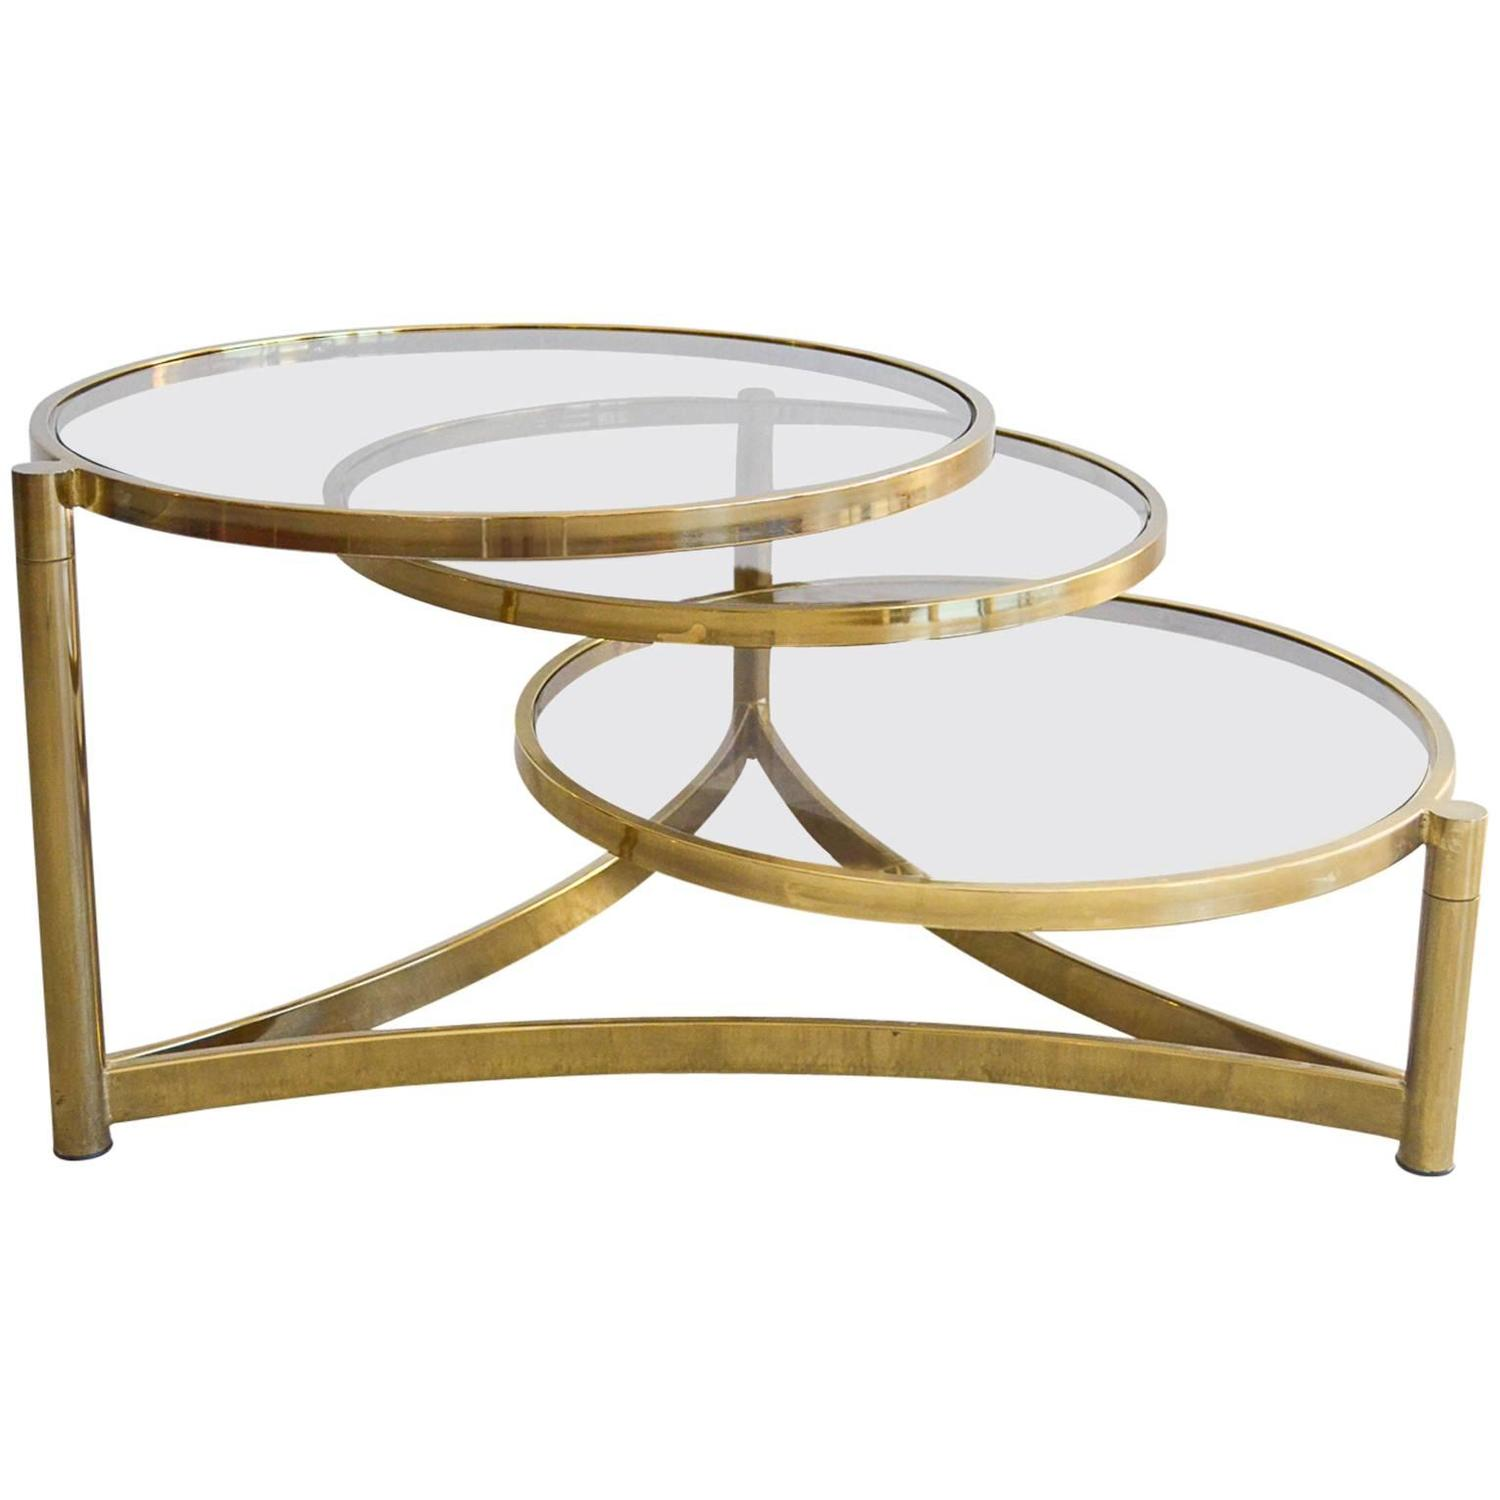 modern file cabinet the perfect real round brass end table coffee acrylic and glass top accent tables wood side white marble cool full size natural edge danish dining tree trunk